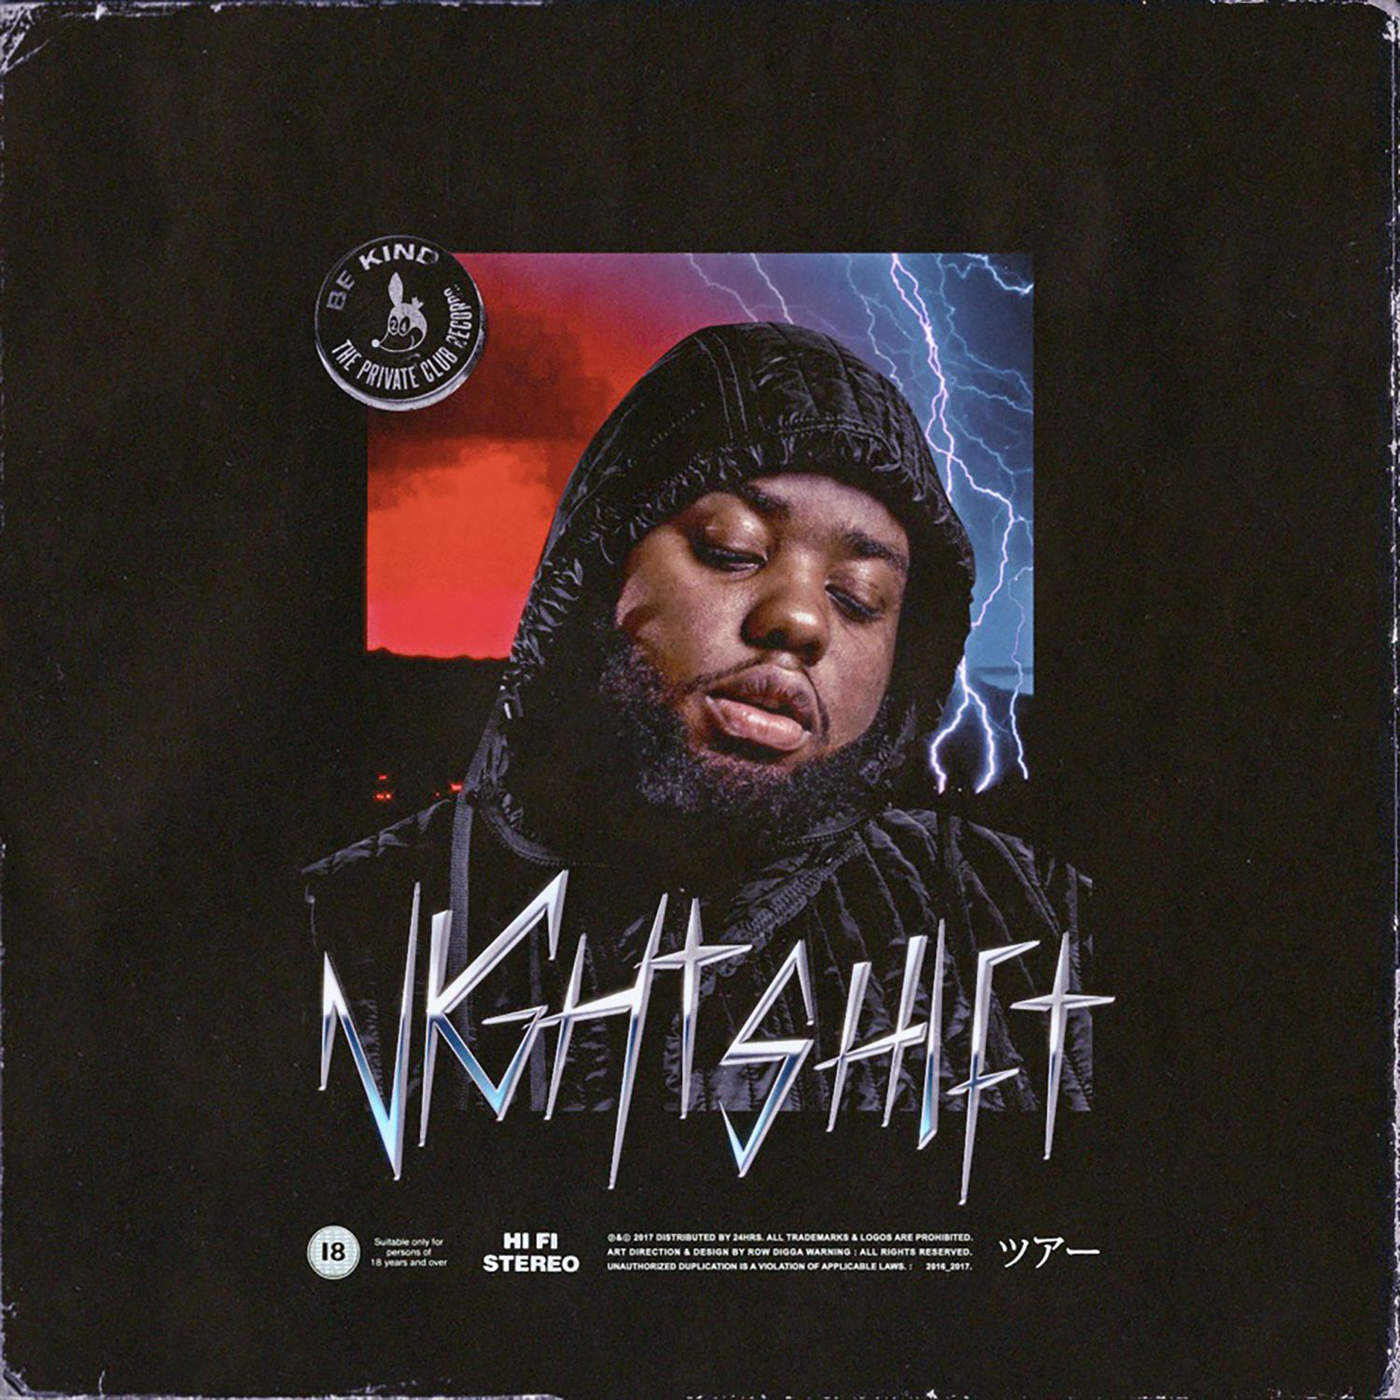 .@2fourhrs drops his #NightShift EP feat. @wizkhalifa, @tydollasign, @Hit_Boy. Stream: https://t.co/q5jC3fJT9h  https://t.co/94ZmCLT1kX